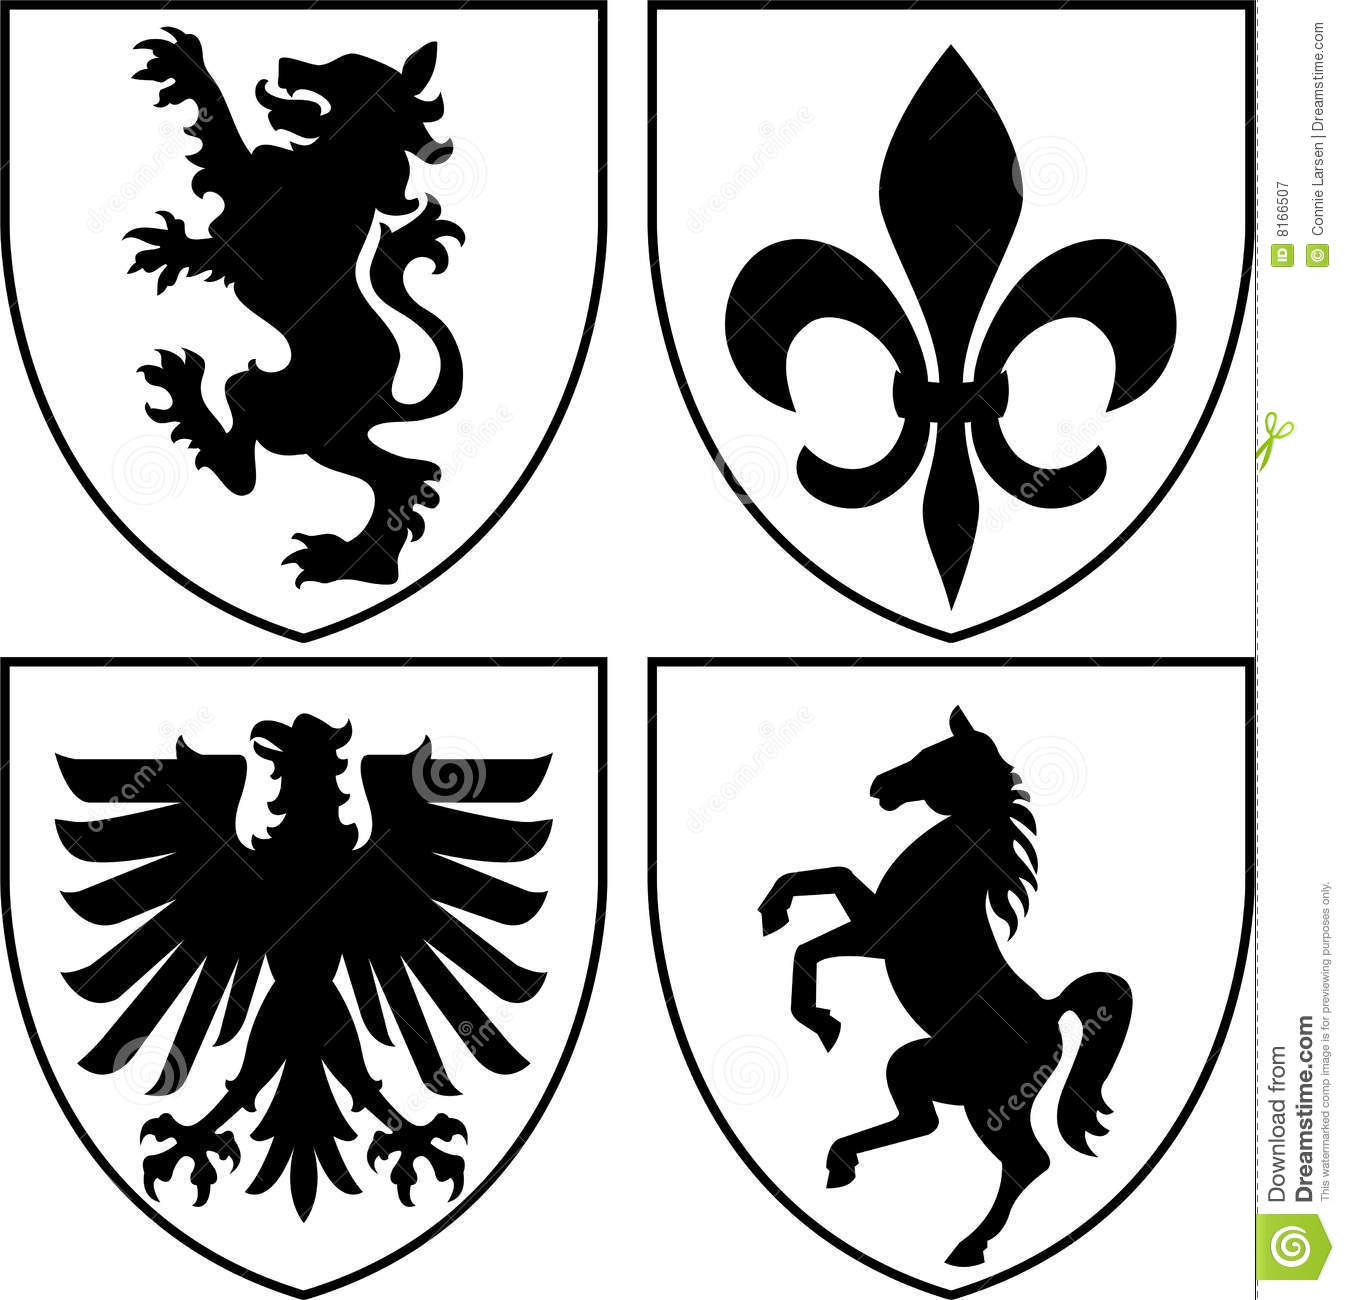 Heraldic Crests/Coat Of Arms Eps Royalty Free Stock Photography.